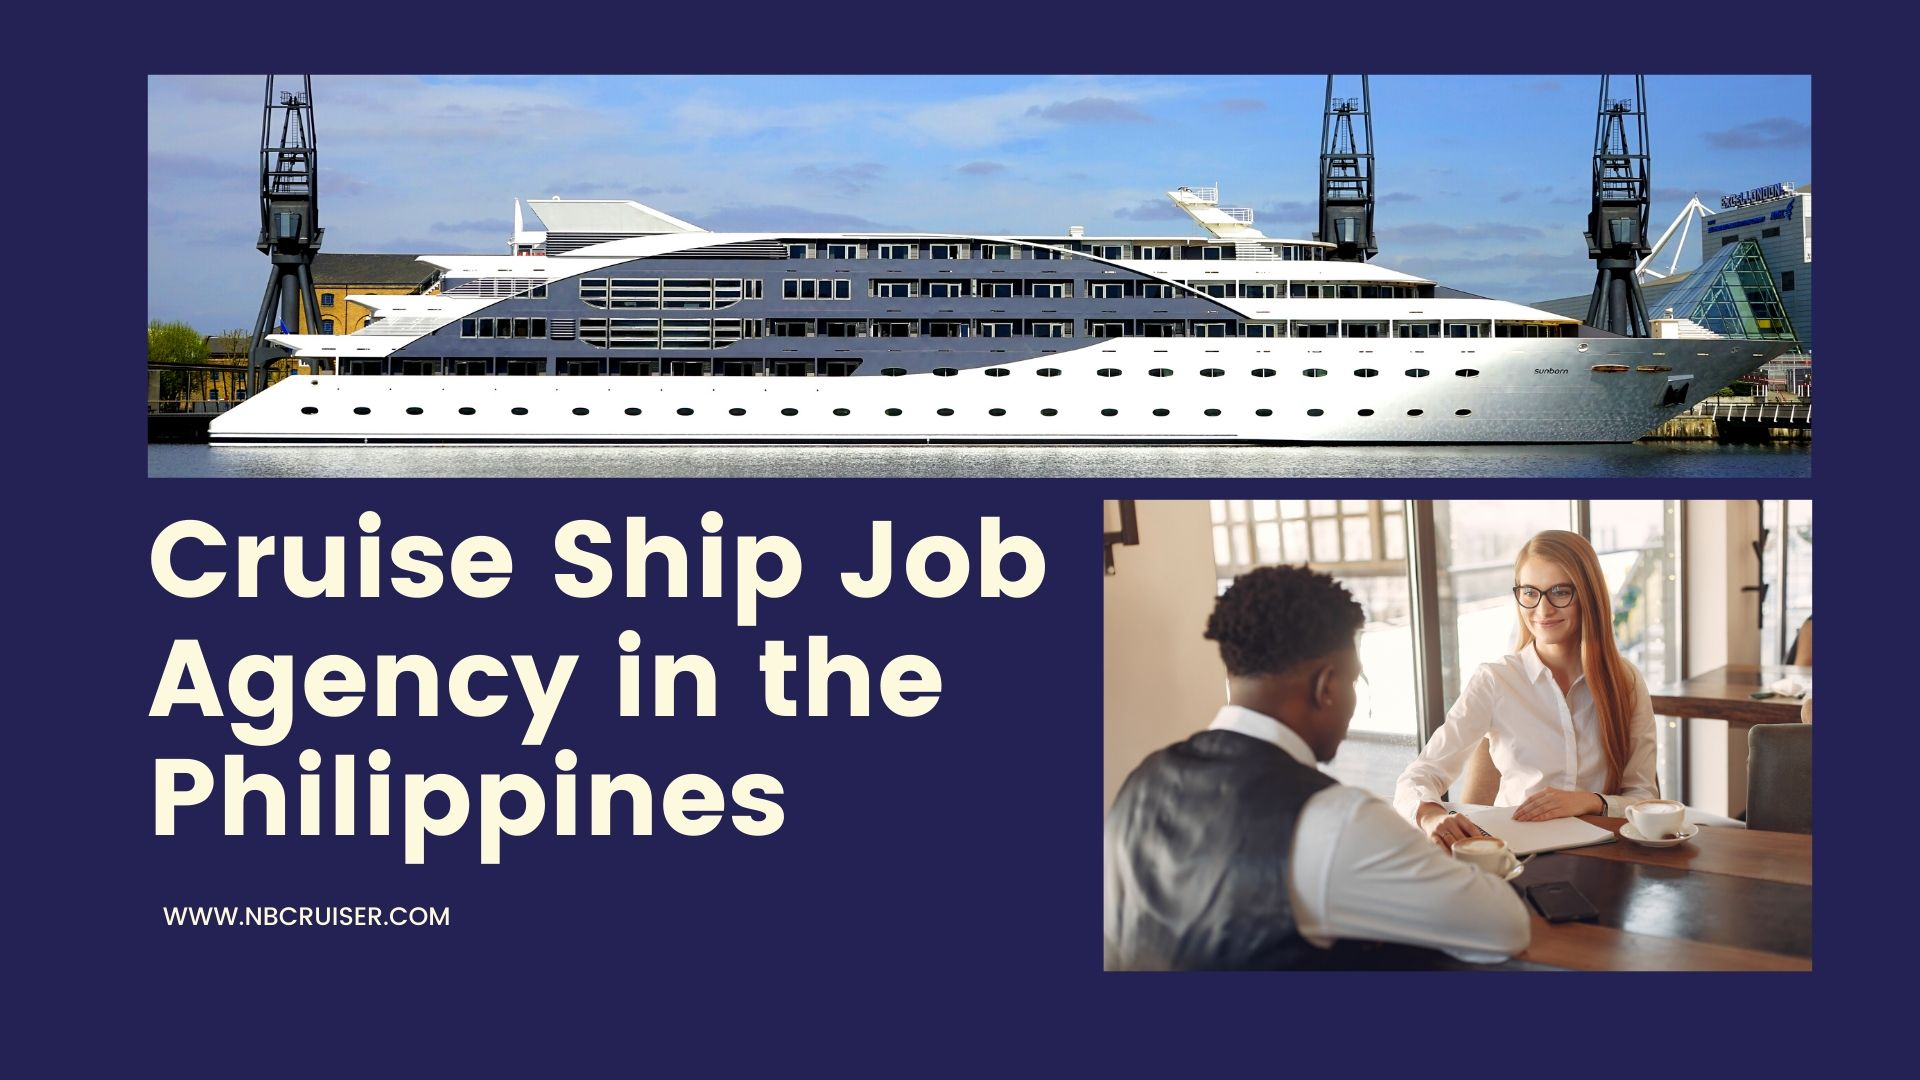 cruise ship job agency in the Philippines